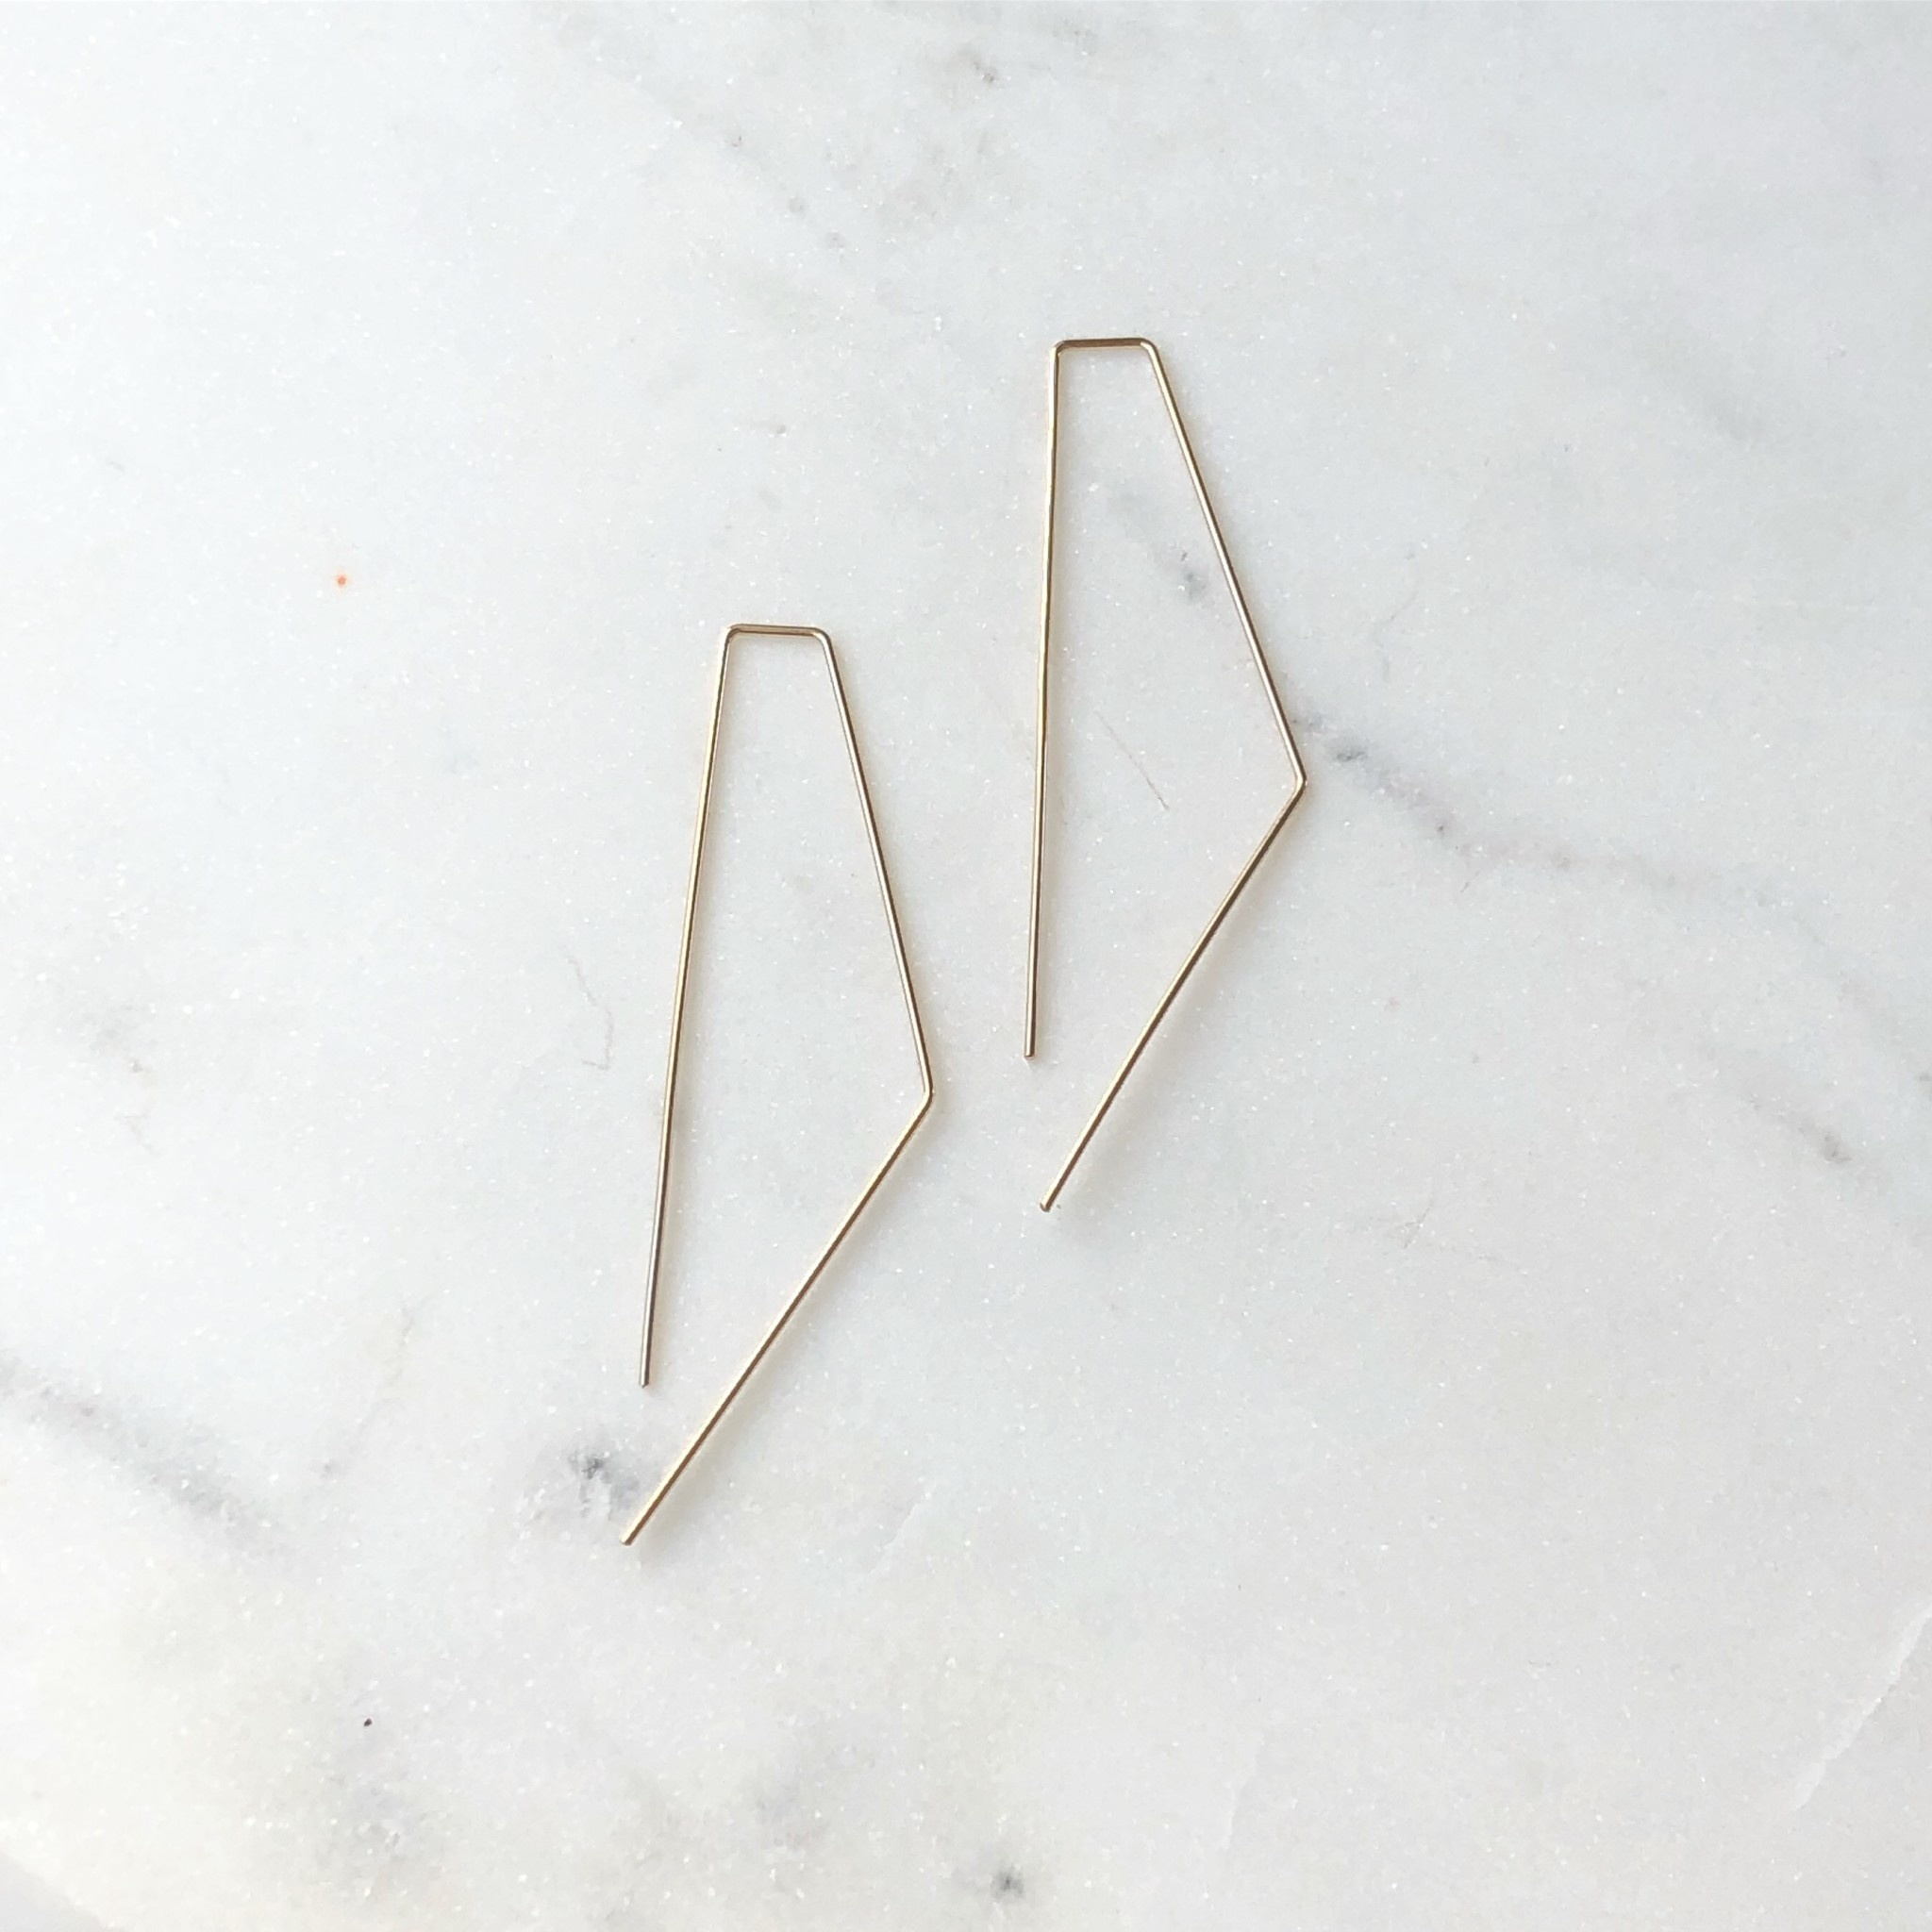 Token Jewelry Bent Slides Small-14K Gold Fill